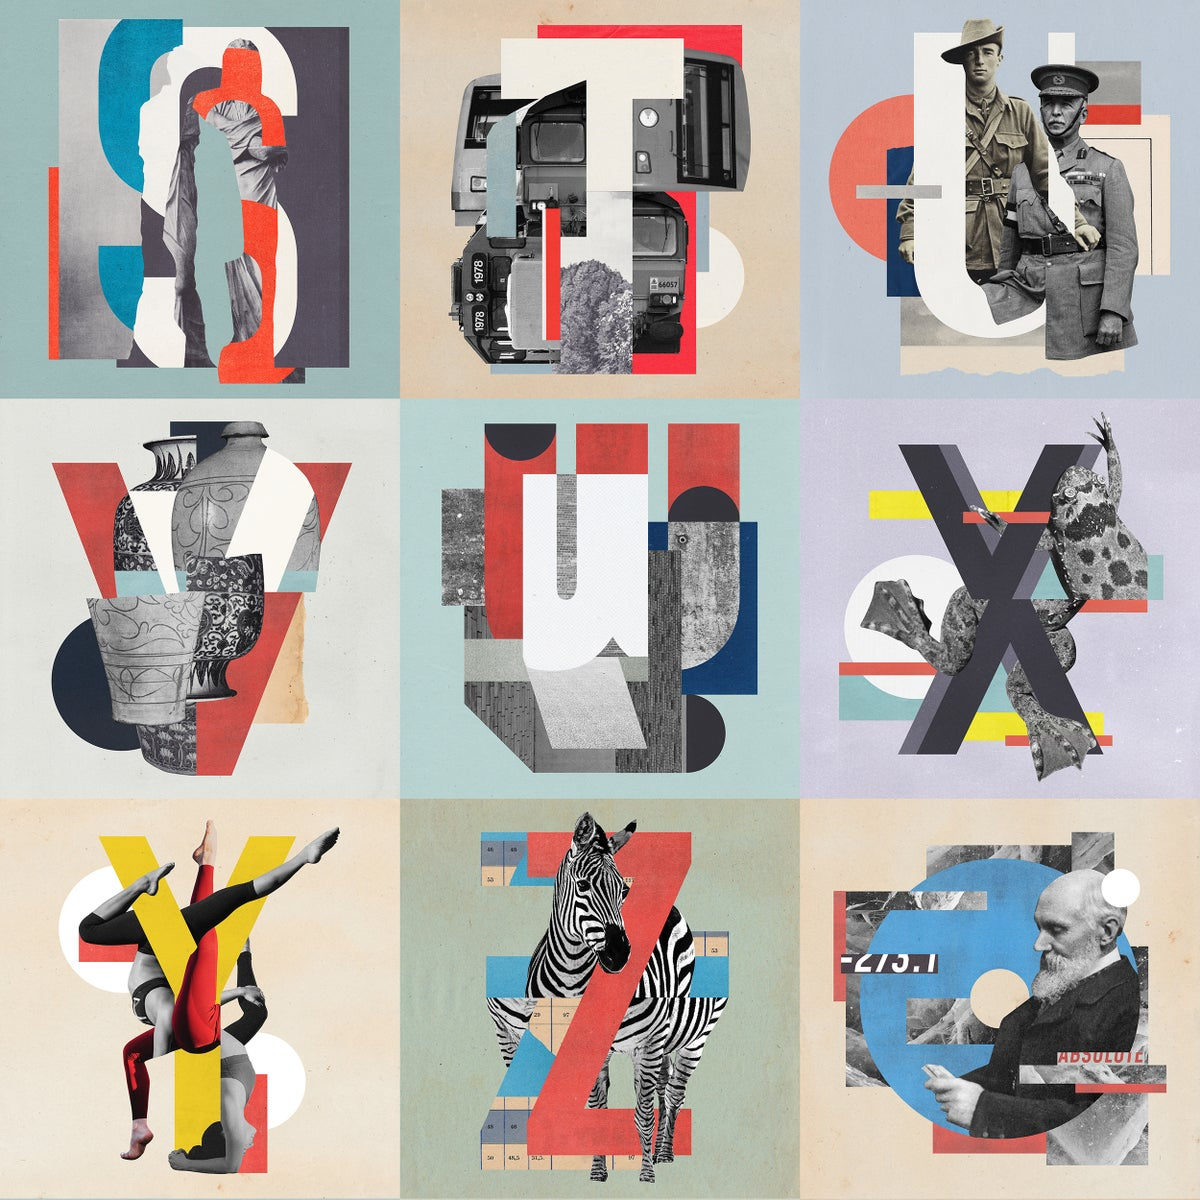 36 DAYS OF TYPE 2020 - LETTERS & NUMBERS - FINE ART PRINT